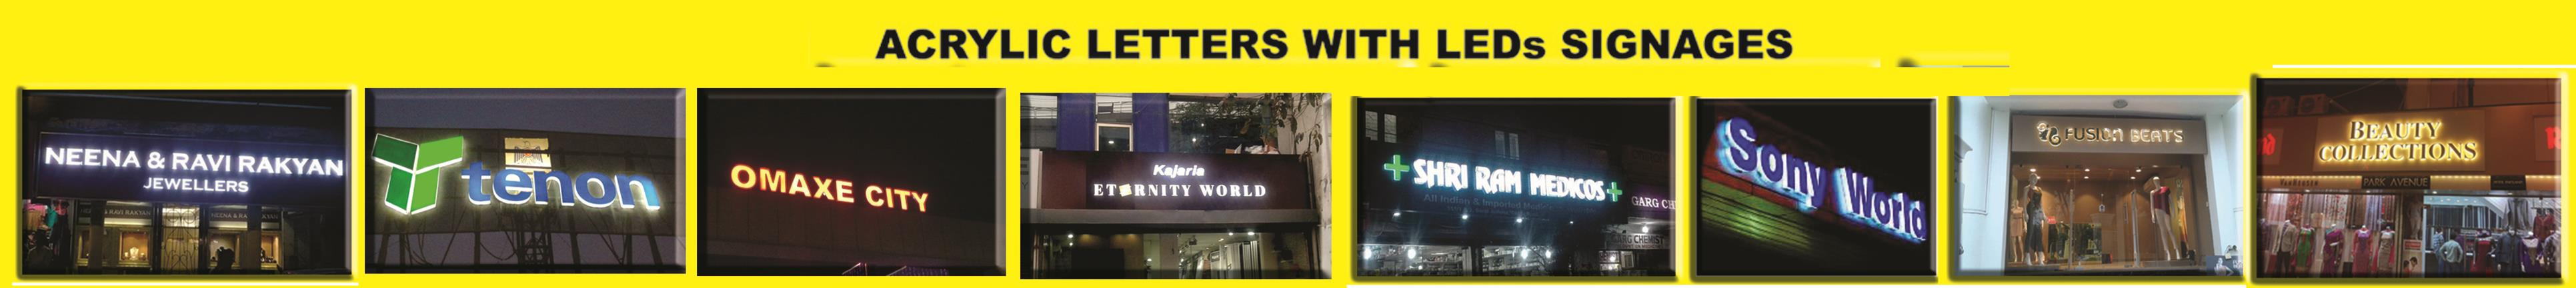 SS LETTERS AND LED SIGNAGES:  ARE YOU LOOKING FOR SS & LED SIGN BOARD MANUFACTURERS IN DELHI DELHI NCR, WE AT DIMENSIONS INDIA ARE THE BEST COMPANY OF LED SIGN BOARD MANUFACTURERS IN DELHI AND DELHI NCR  WE AT DIMENSIONS INDIA 8860908890 US - by LED SIGN BOARD BY DIMENSIONS INDIA, Delhi